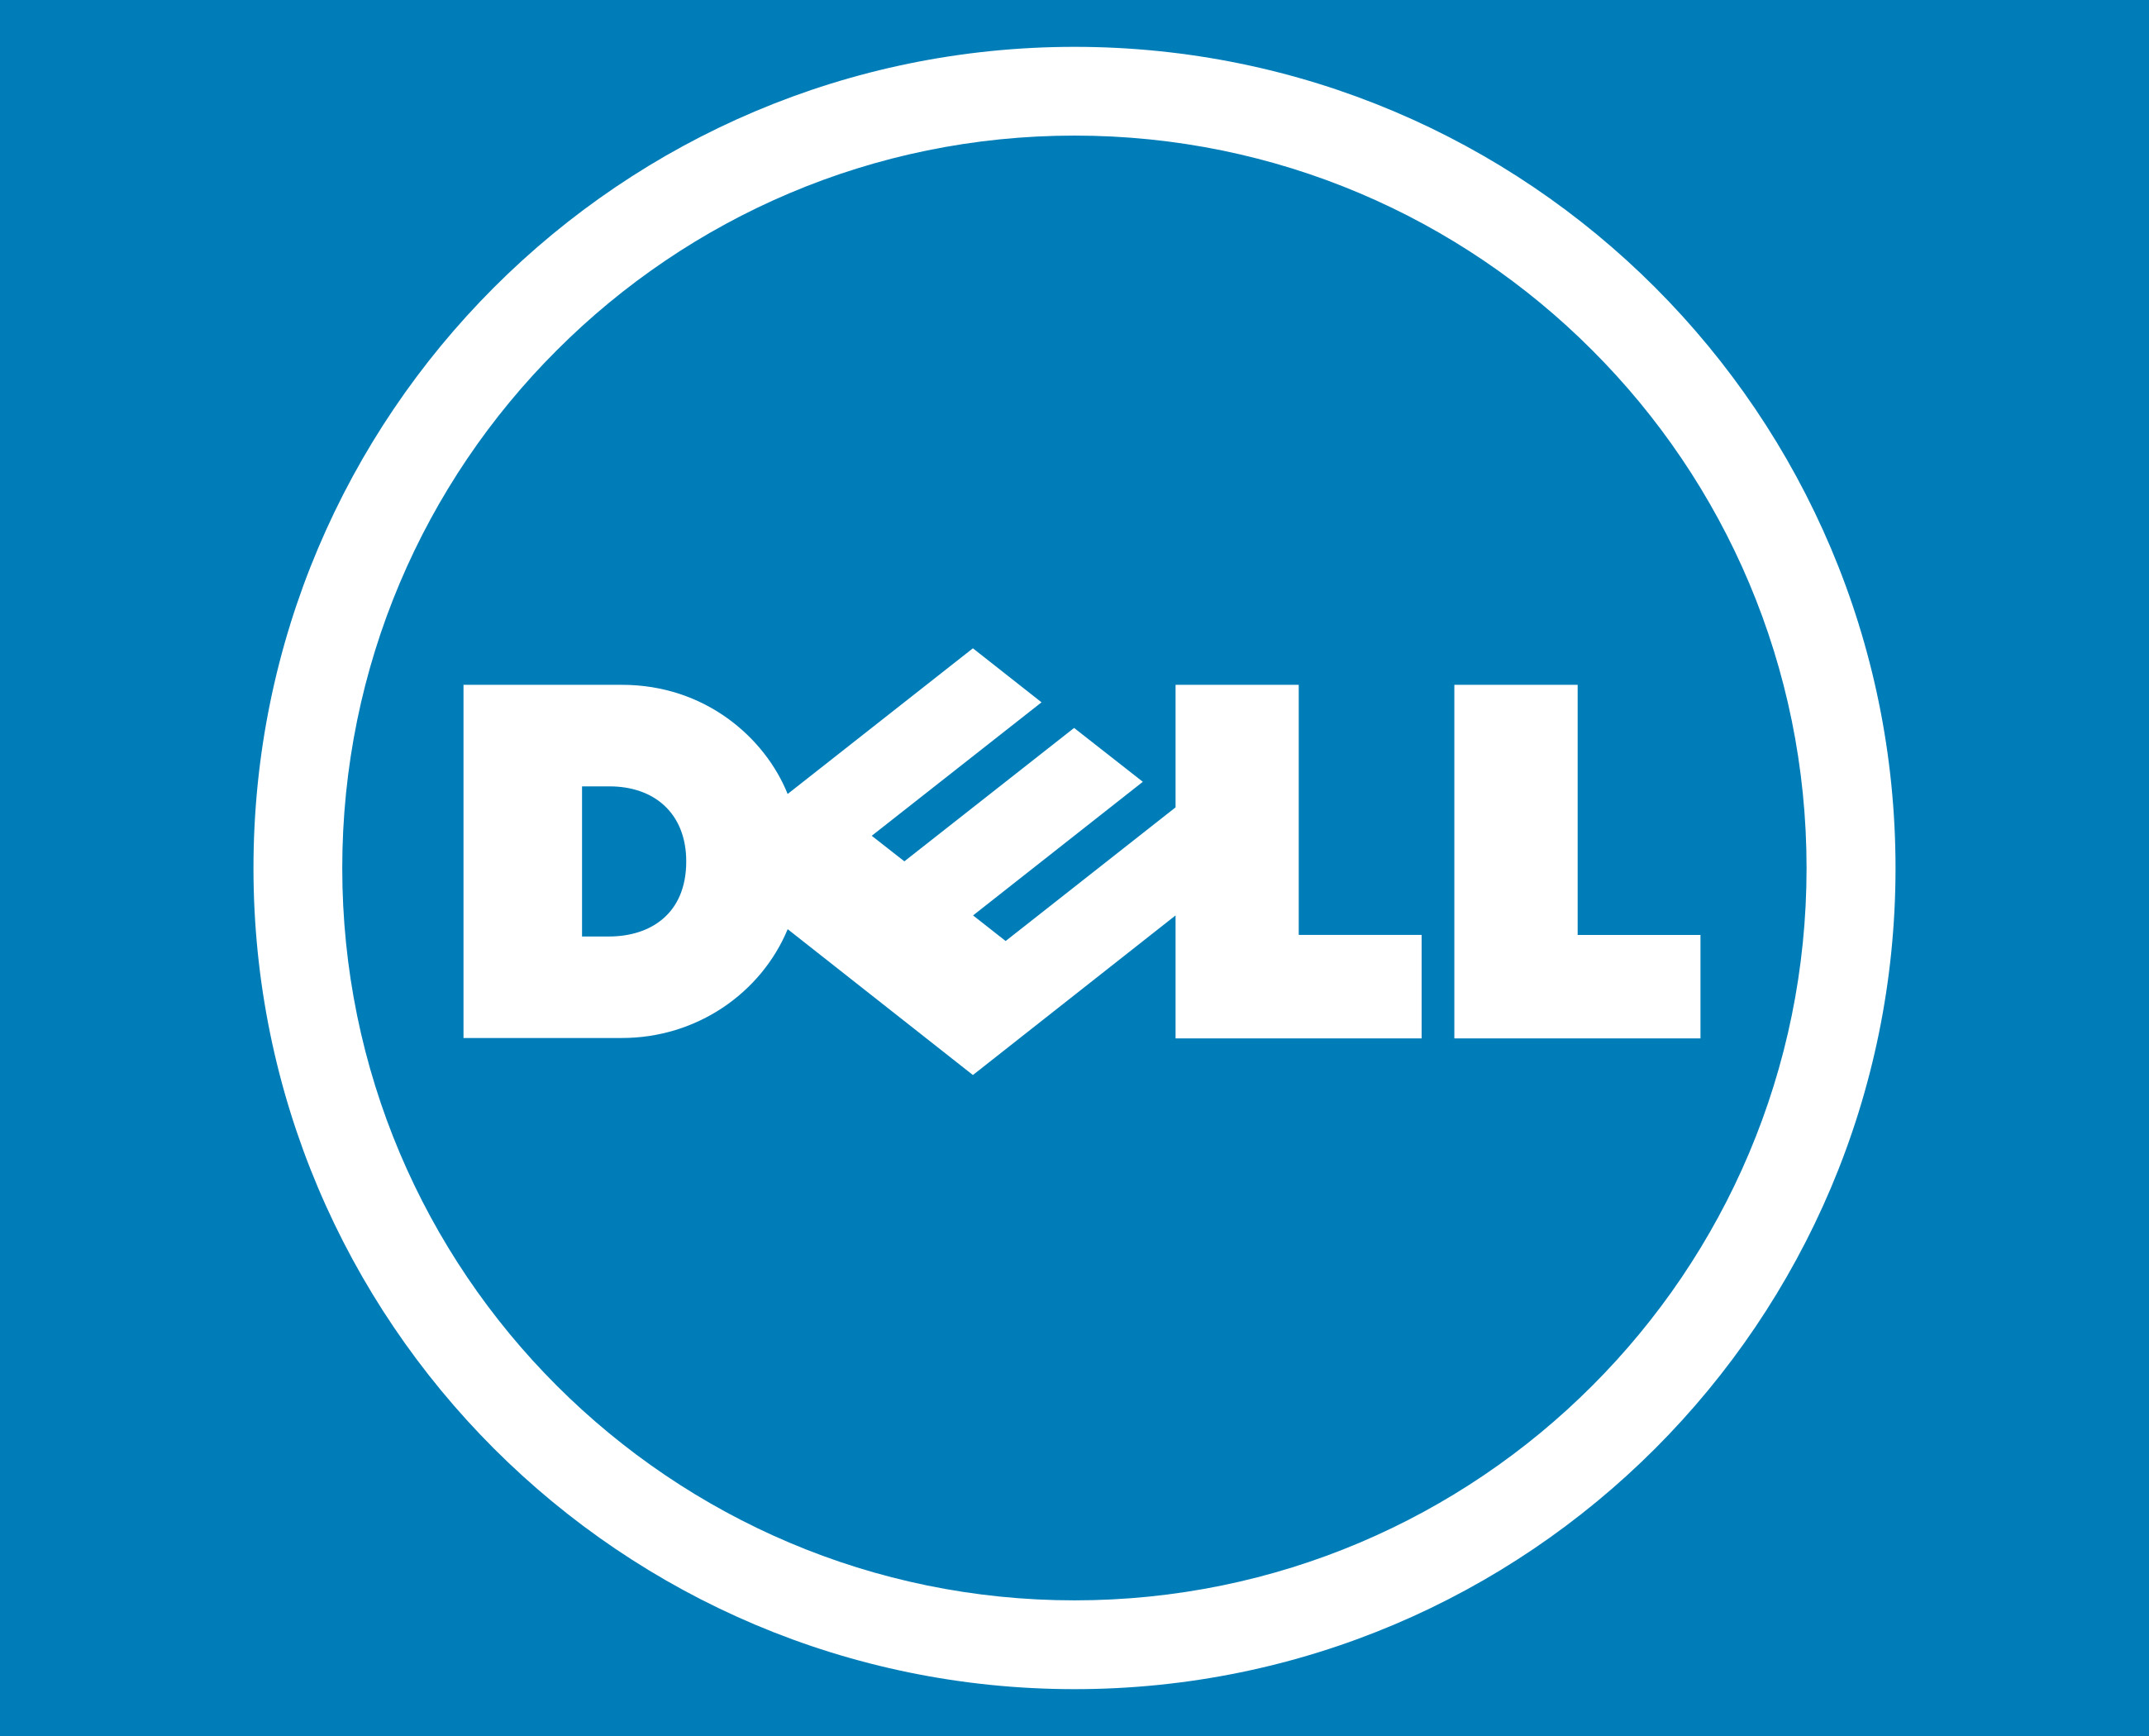 Dell laptops confirmed to be affected by serious